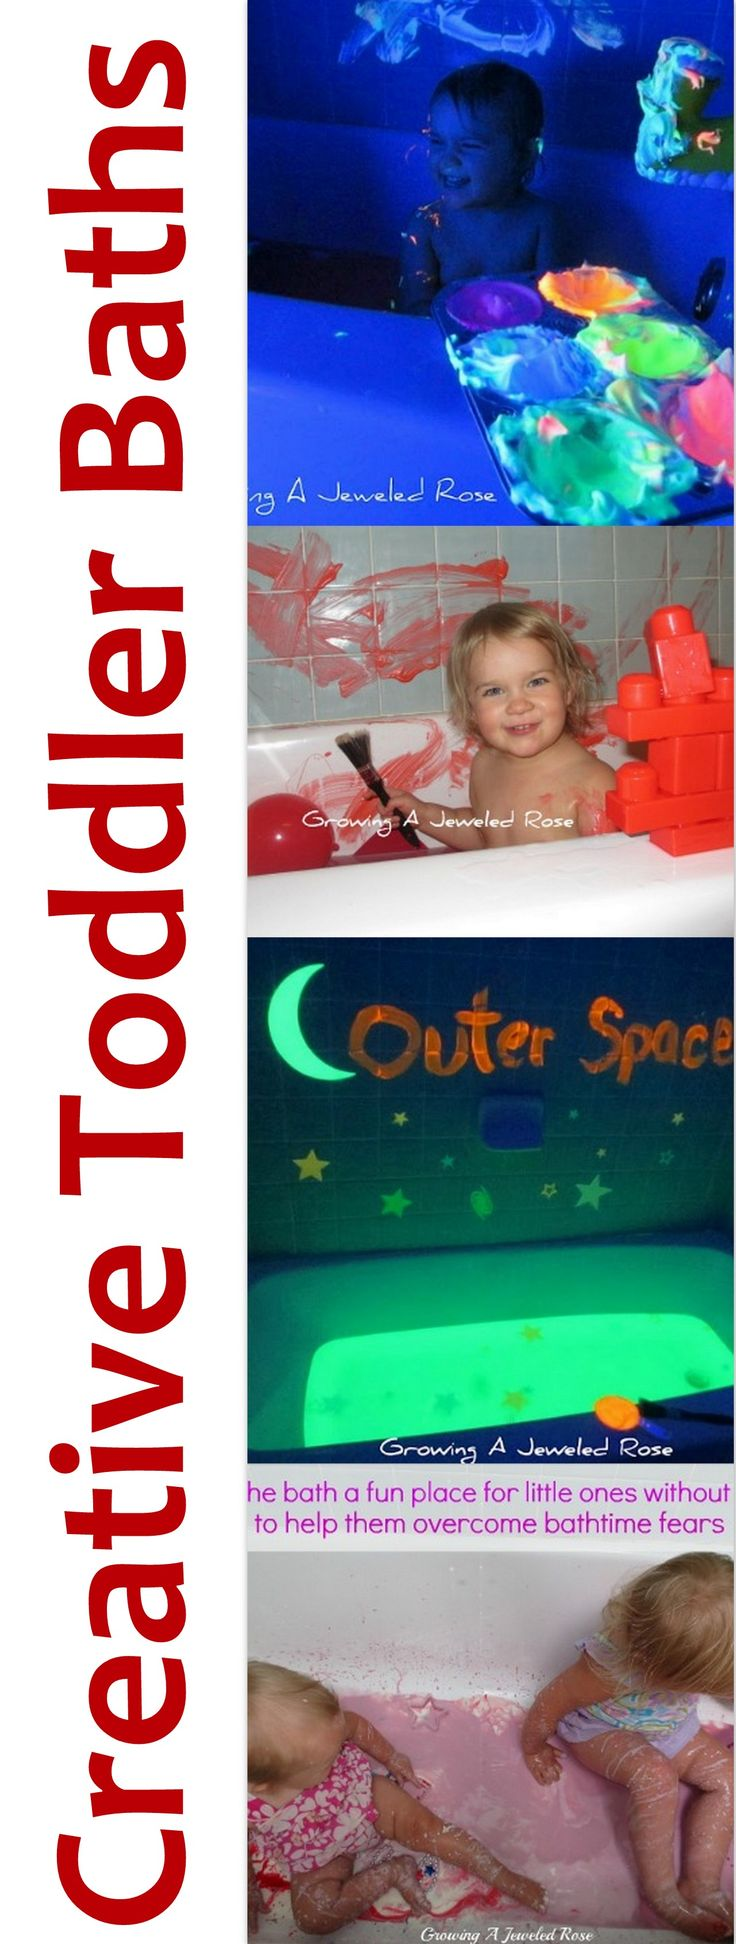 Fun glow in the dark bath ideas.  Use non toxic highlighters and run them under the water as it fills.  With some shaving cream and Colorations fluorescent Activity paint you can draw in the tub.  Add black light and voila, you have an Outer Space themed bathtub.